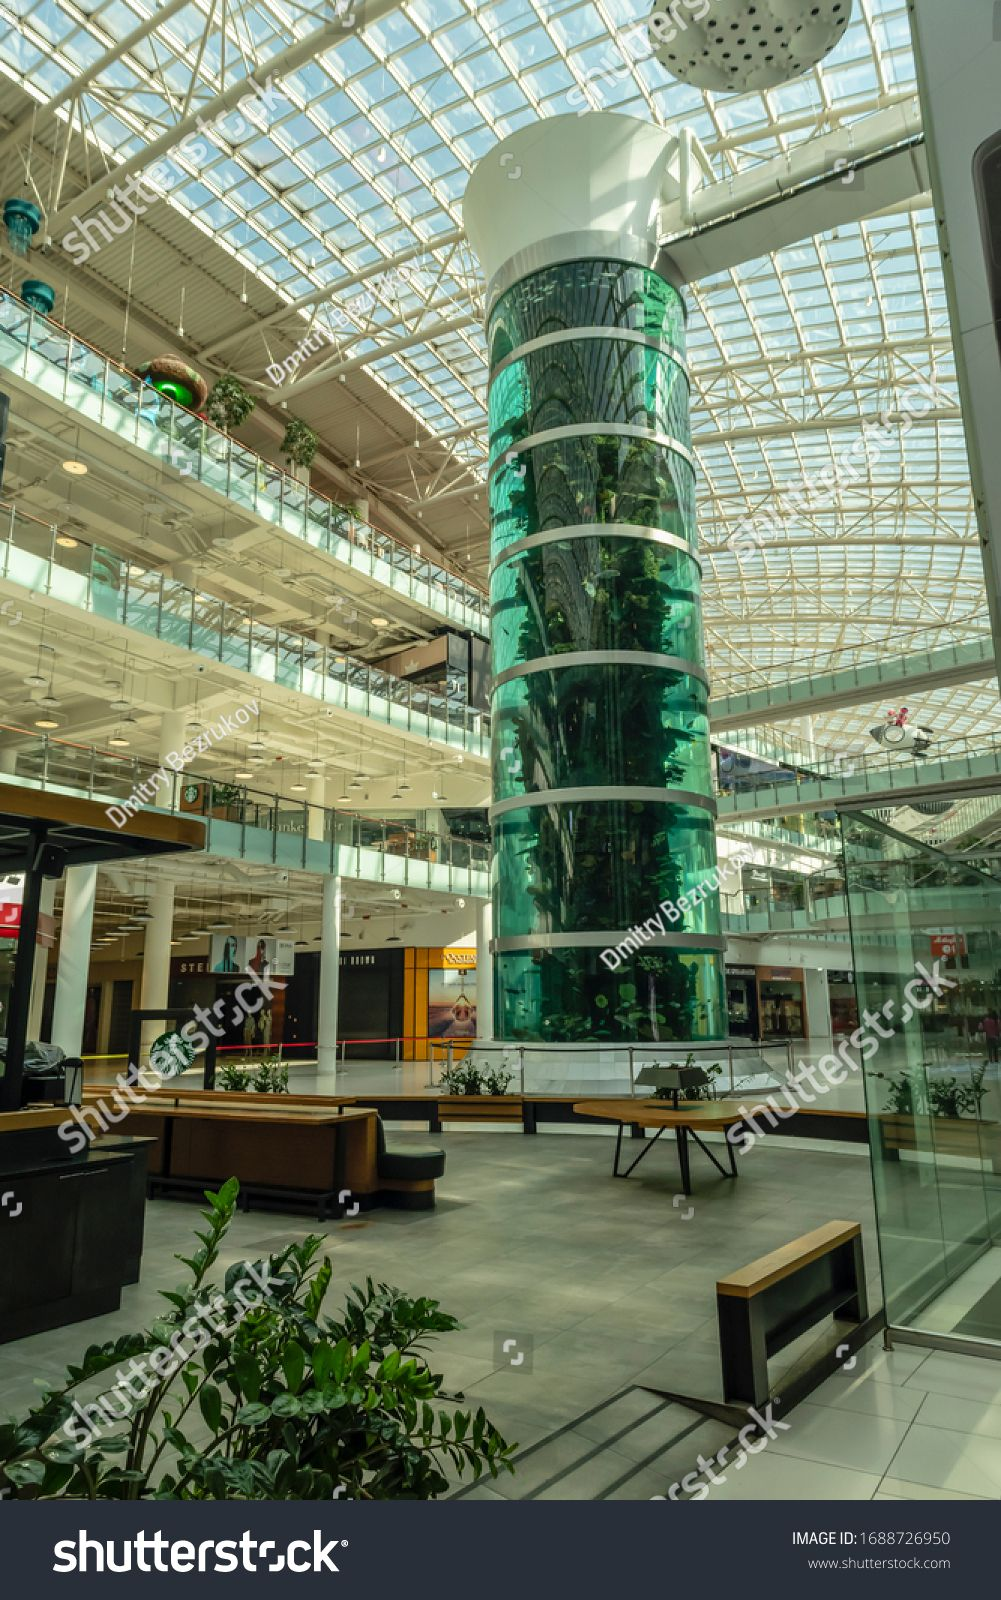 Russia, Moscow - March 28, 2020: Empty, due to the coronovirus, Aviapark shopping center on a day off. #Ad , #Sponsored, #Empty#Russia#Moscow#March